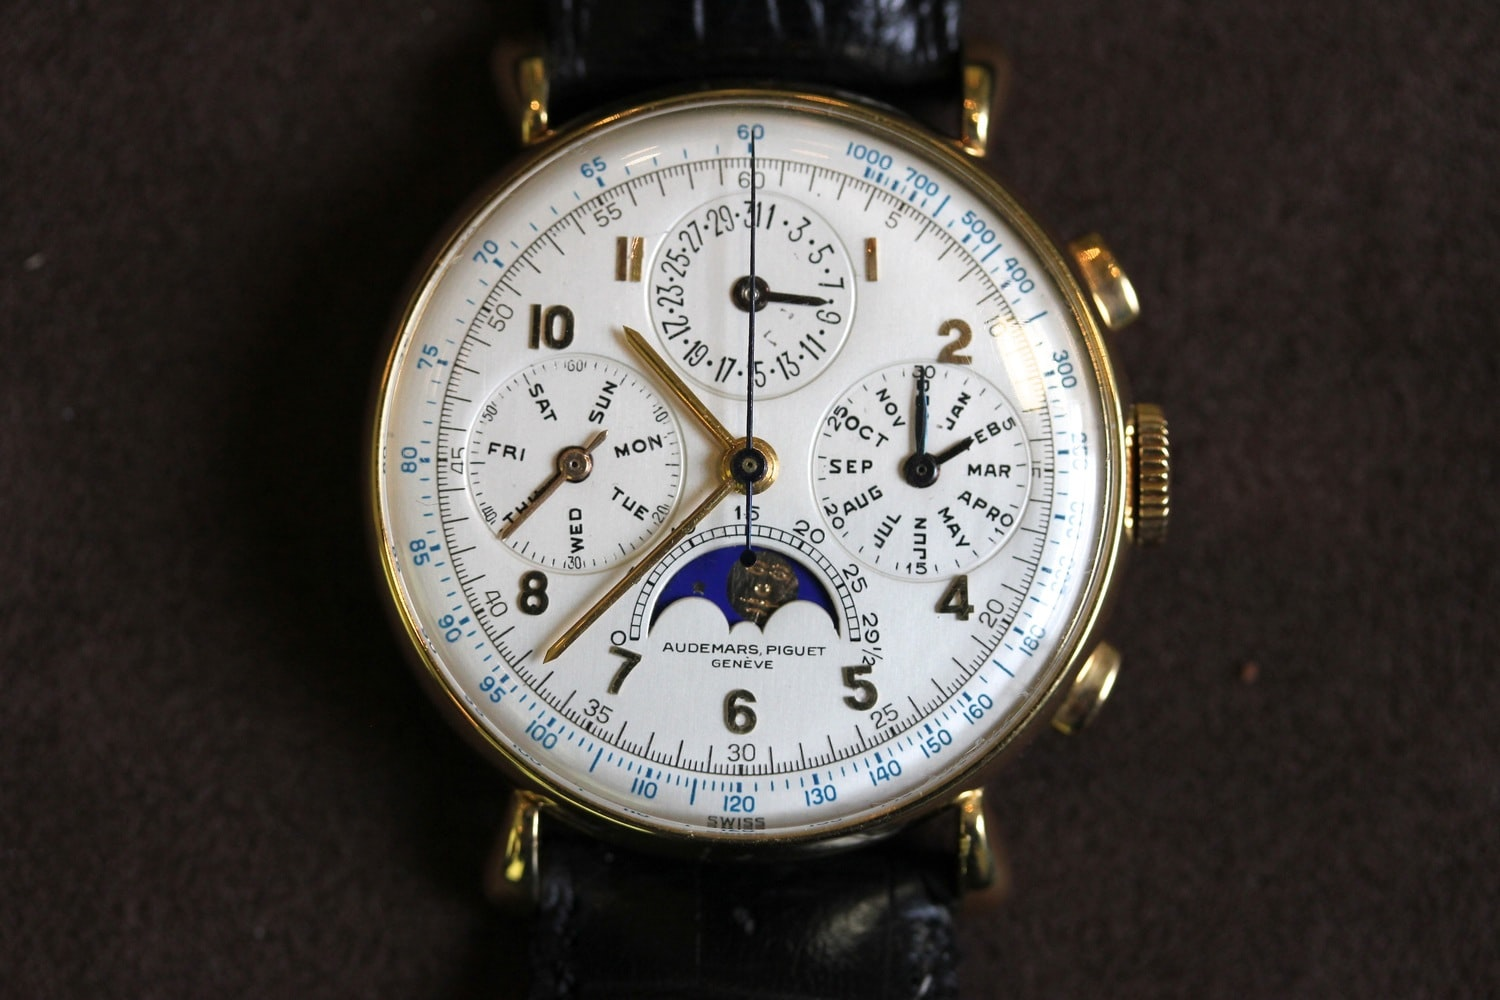 Breaking News: The Single Largest Collection Of Vintage Audemars Piguet Has Been Sold, And All 89 Timepieces Are Going Back To Audemars Piguet Breaking News: The Single Largest Collection Of Vintage Audemars Piguet Has Been Sold, And All 89 Timepieces Are Going Back To Audemars Piguet MarcusAP10